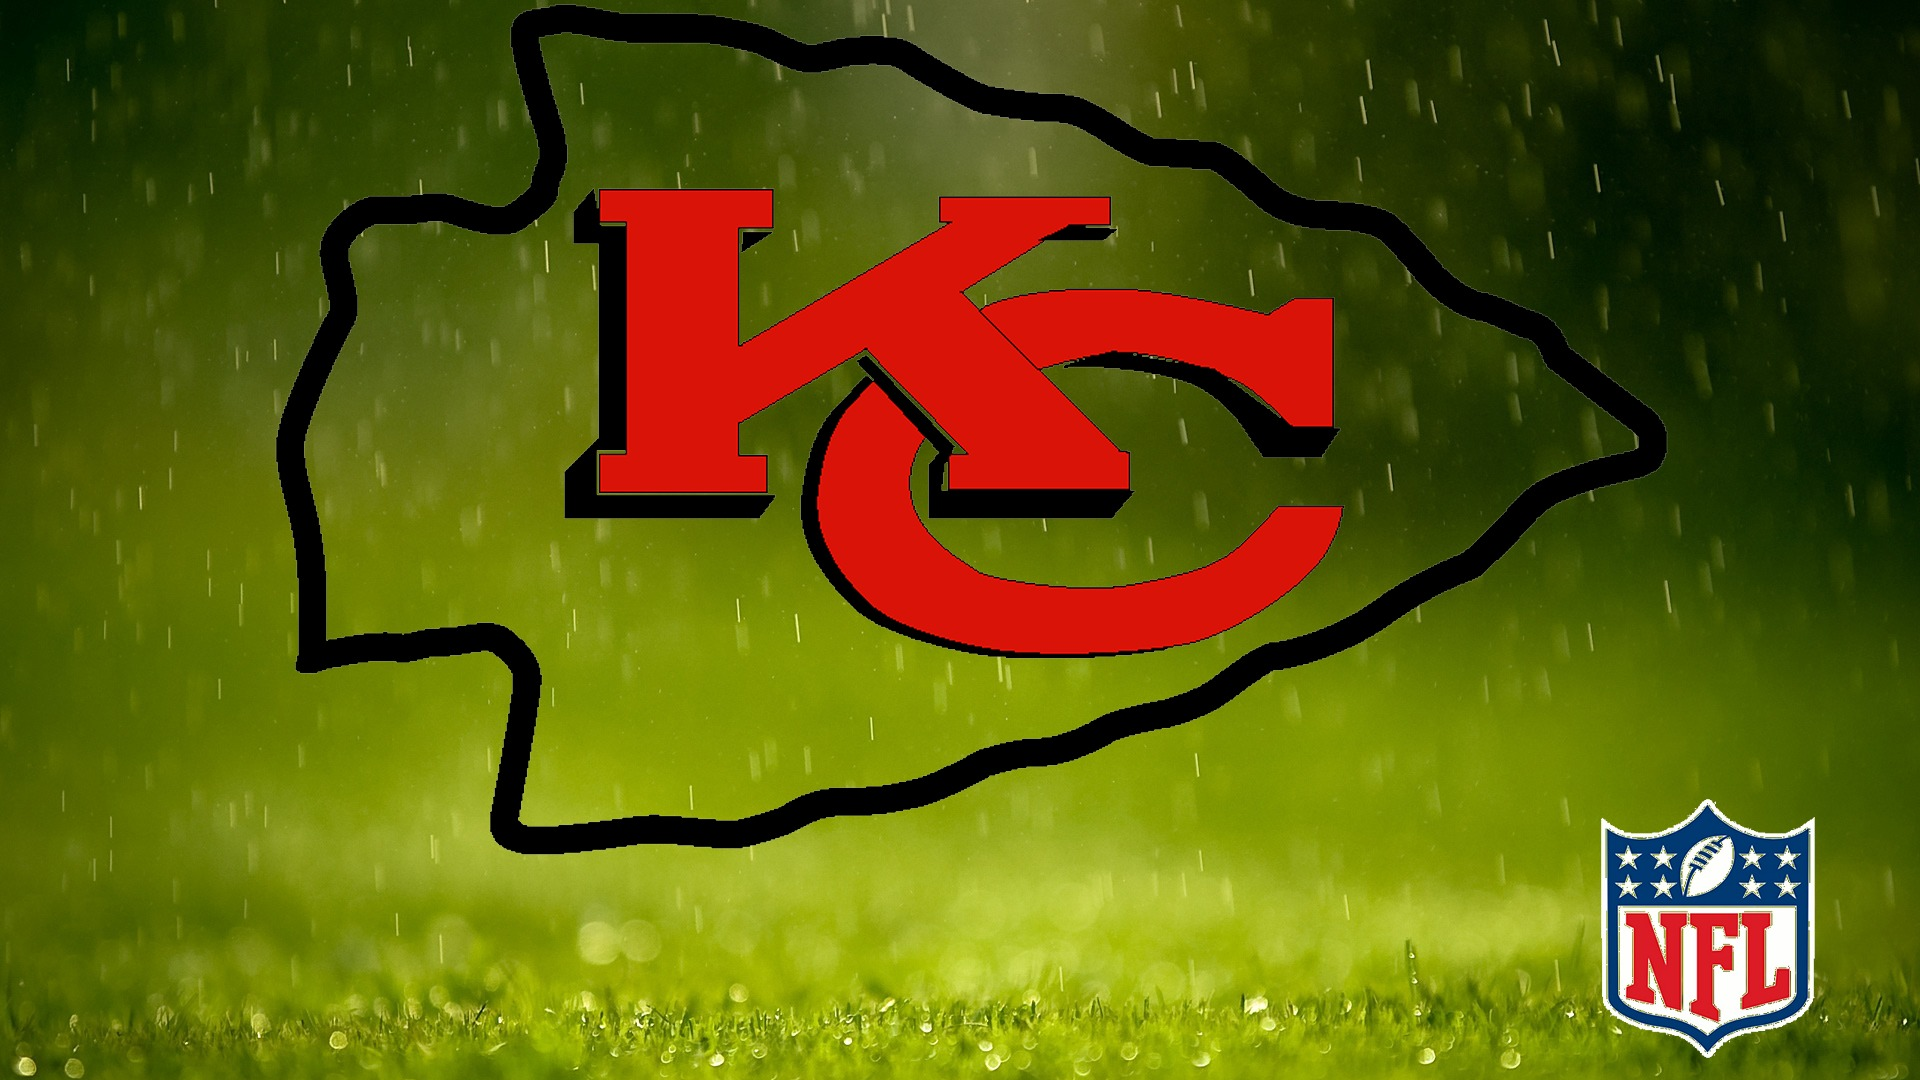 Travel Agency Wallpaper Hd Kansas City Chiefs Logo Wallpaper Pixelstalk Net